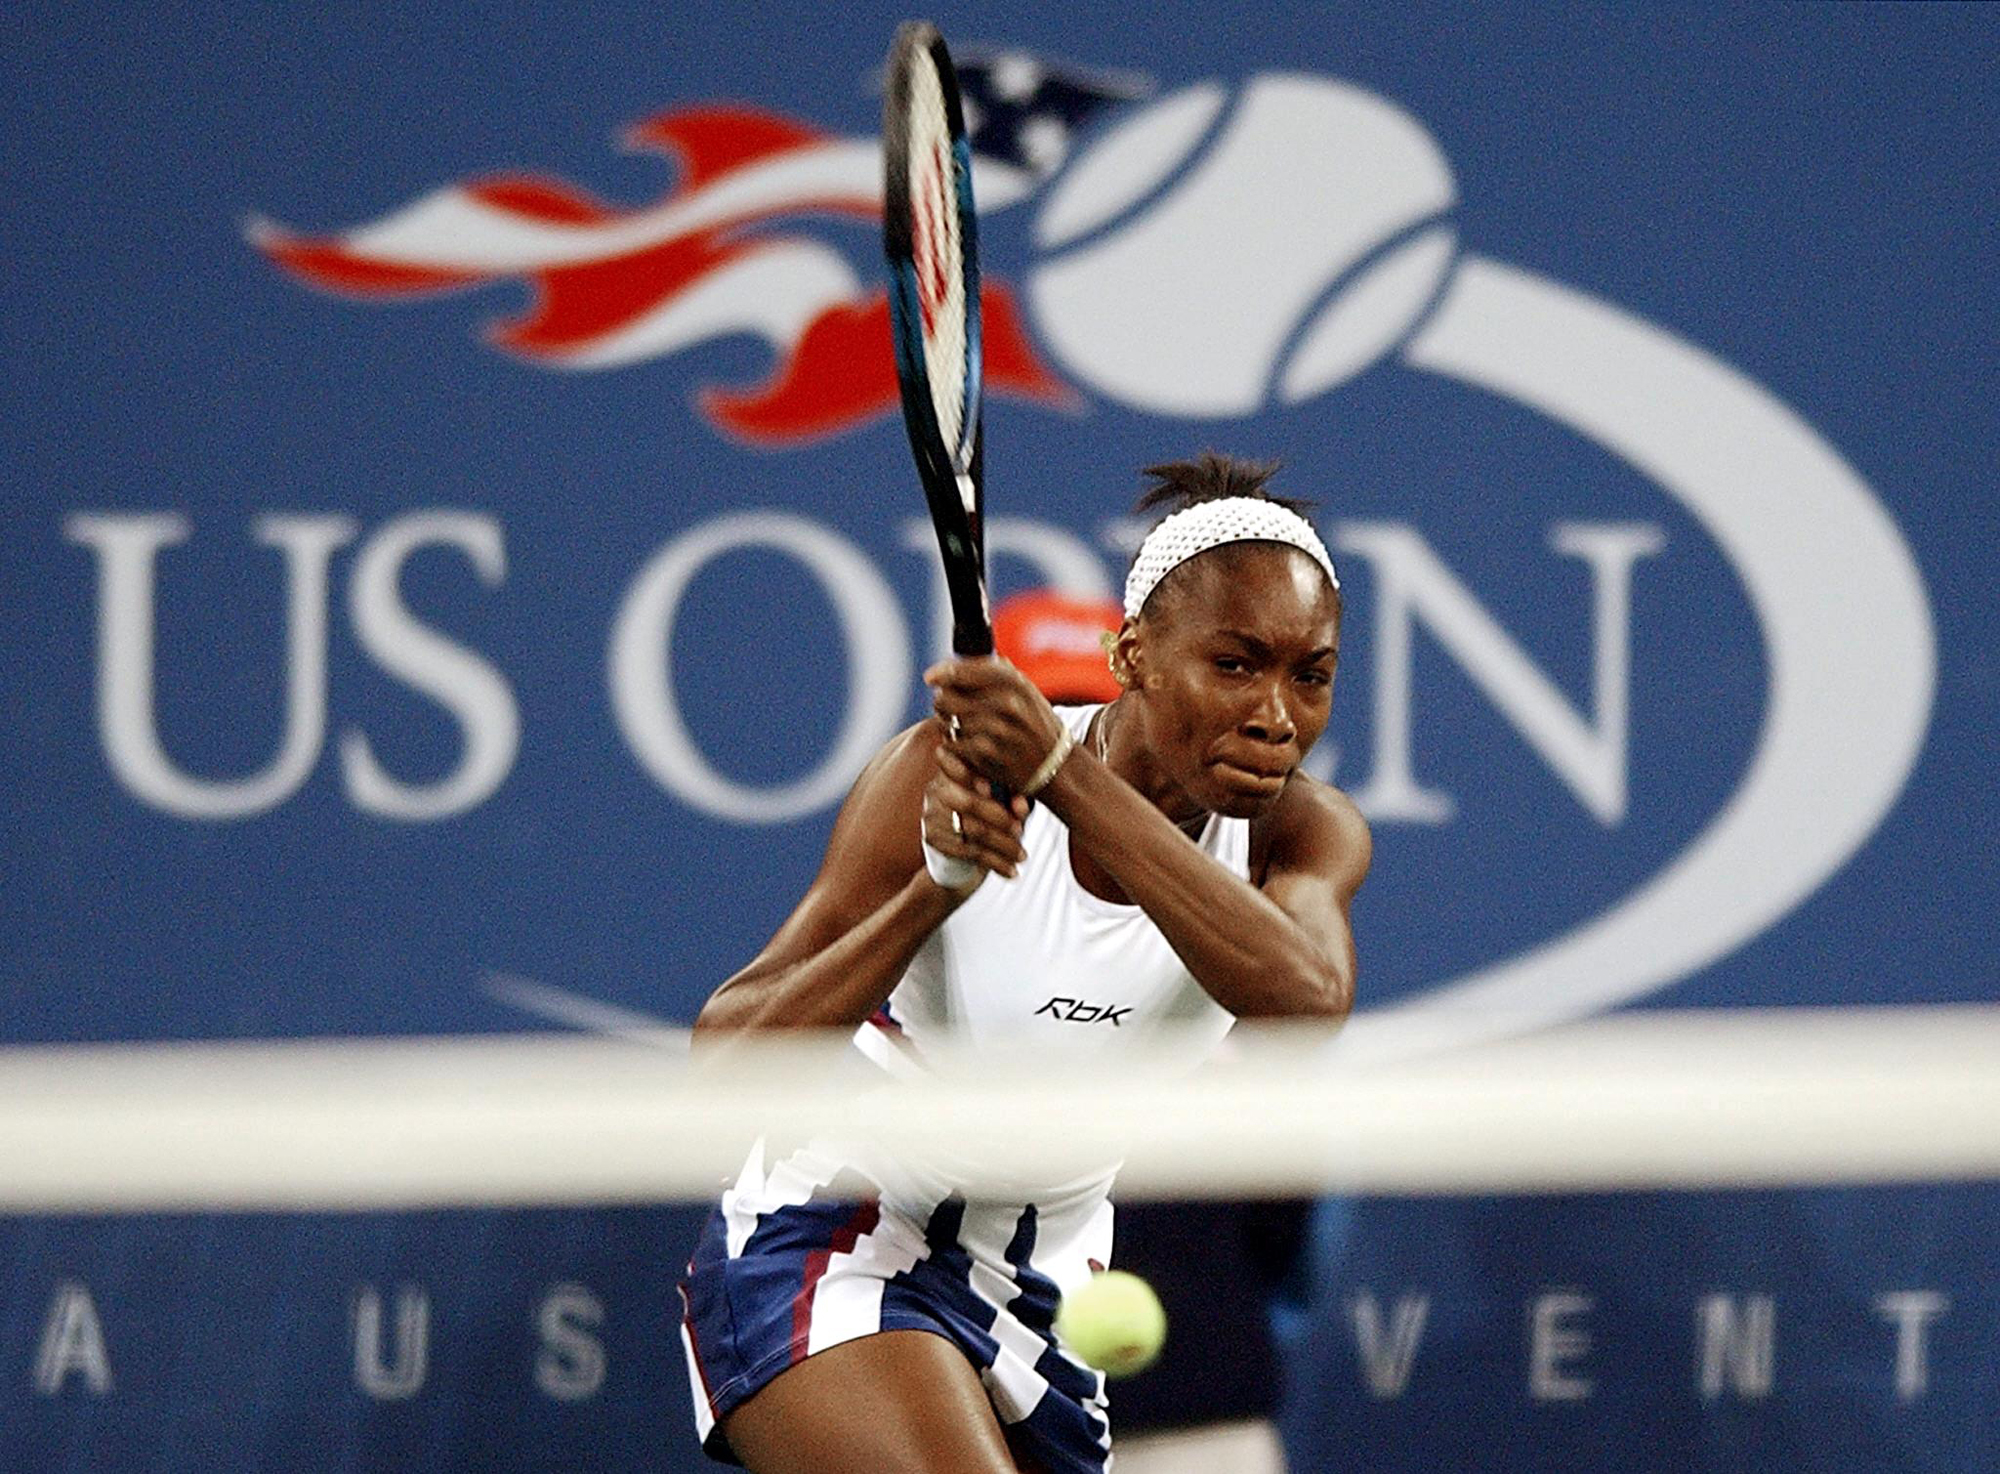 Venus Williams of the US hits a backhand to Serena Williams of the US during their women's final match at the US Open Tennis Tournament 07 September, 2002 at Flushing Meadows, NY. This is the fourth meeting of the Williams sisters in a grand-slam final.